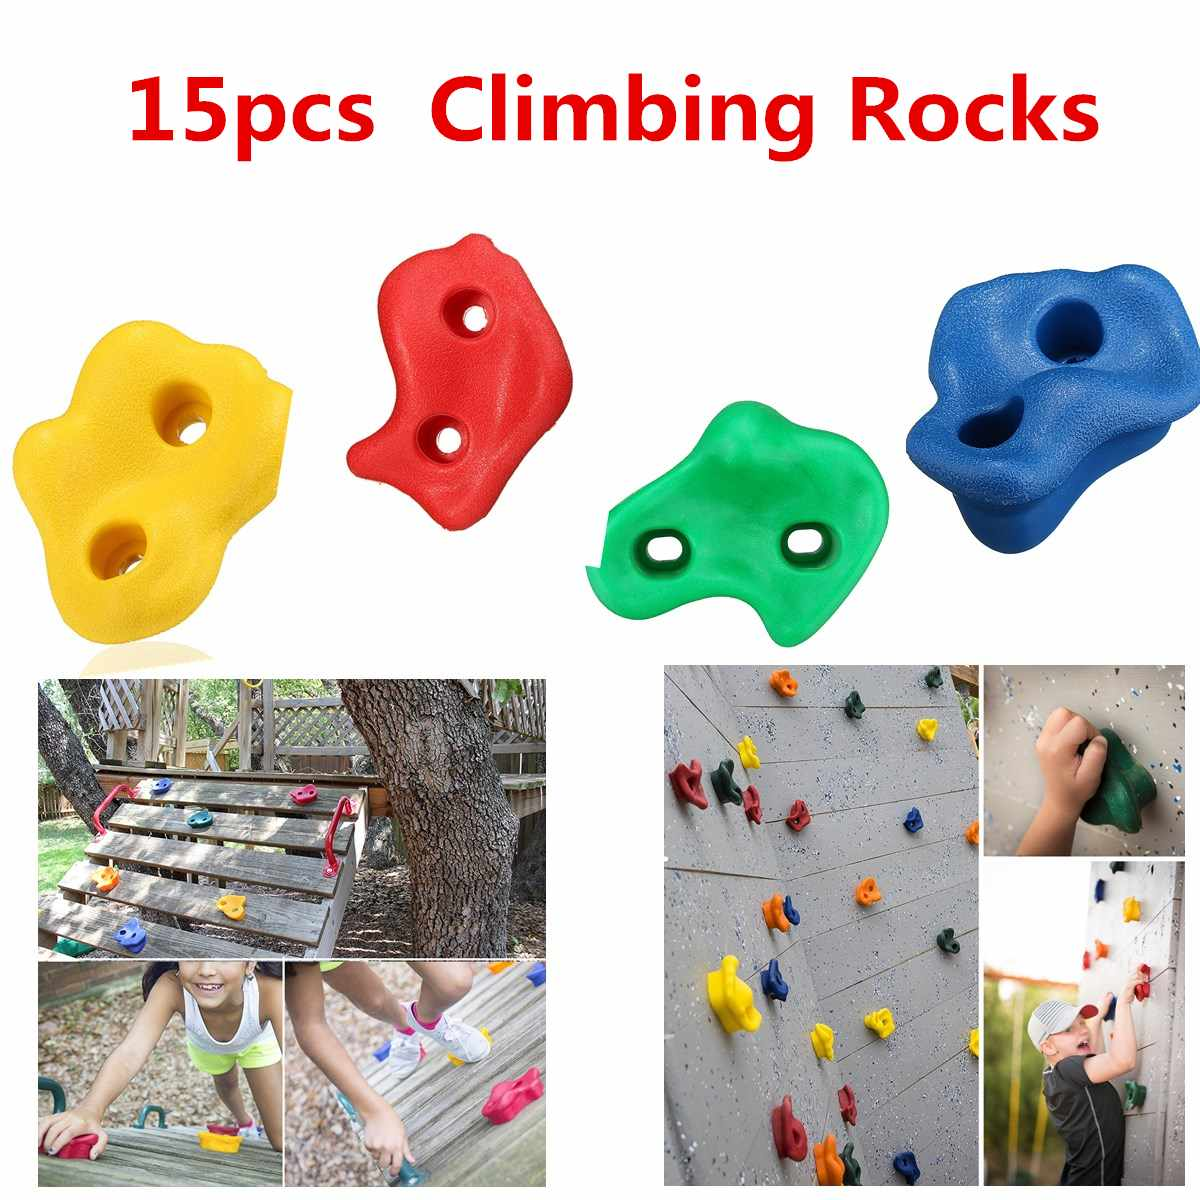 15Pcs Plastic Children Kids Rock Climbing Wood Wall Stones Hand Feet Holds Grip Kits Without Screws Random Color & Shape